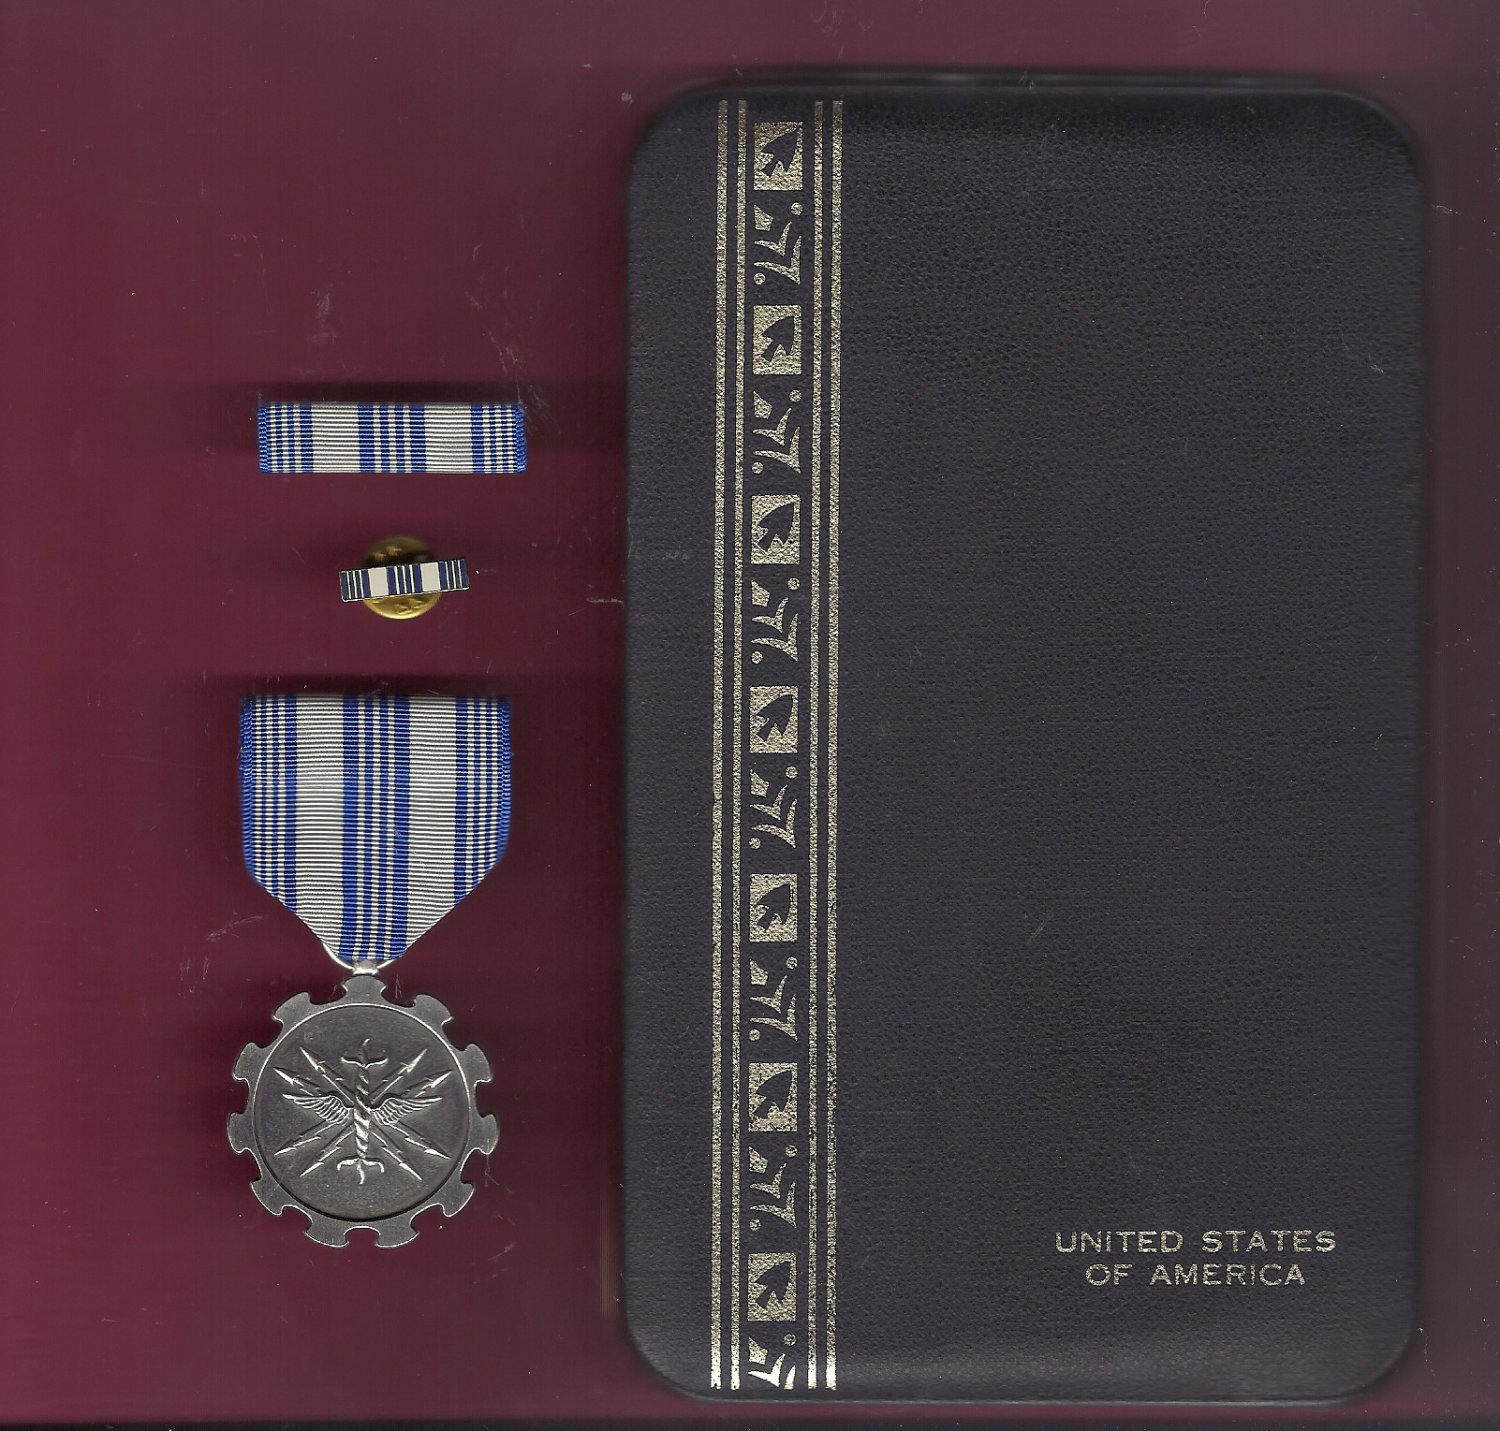 Air Force Achievement medal in case with ribbon bar and lapel pin